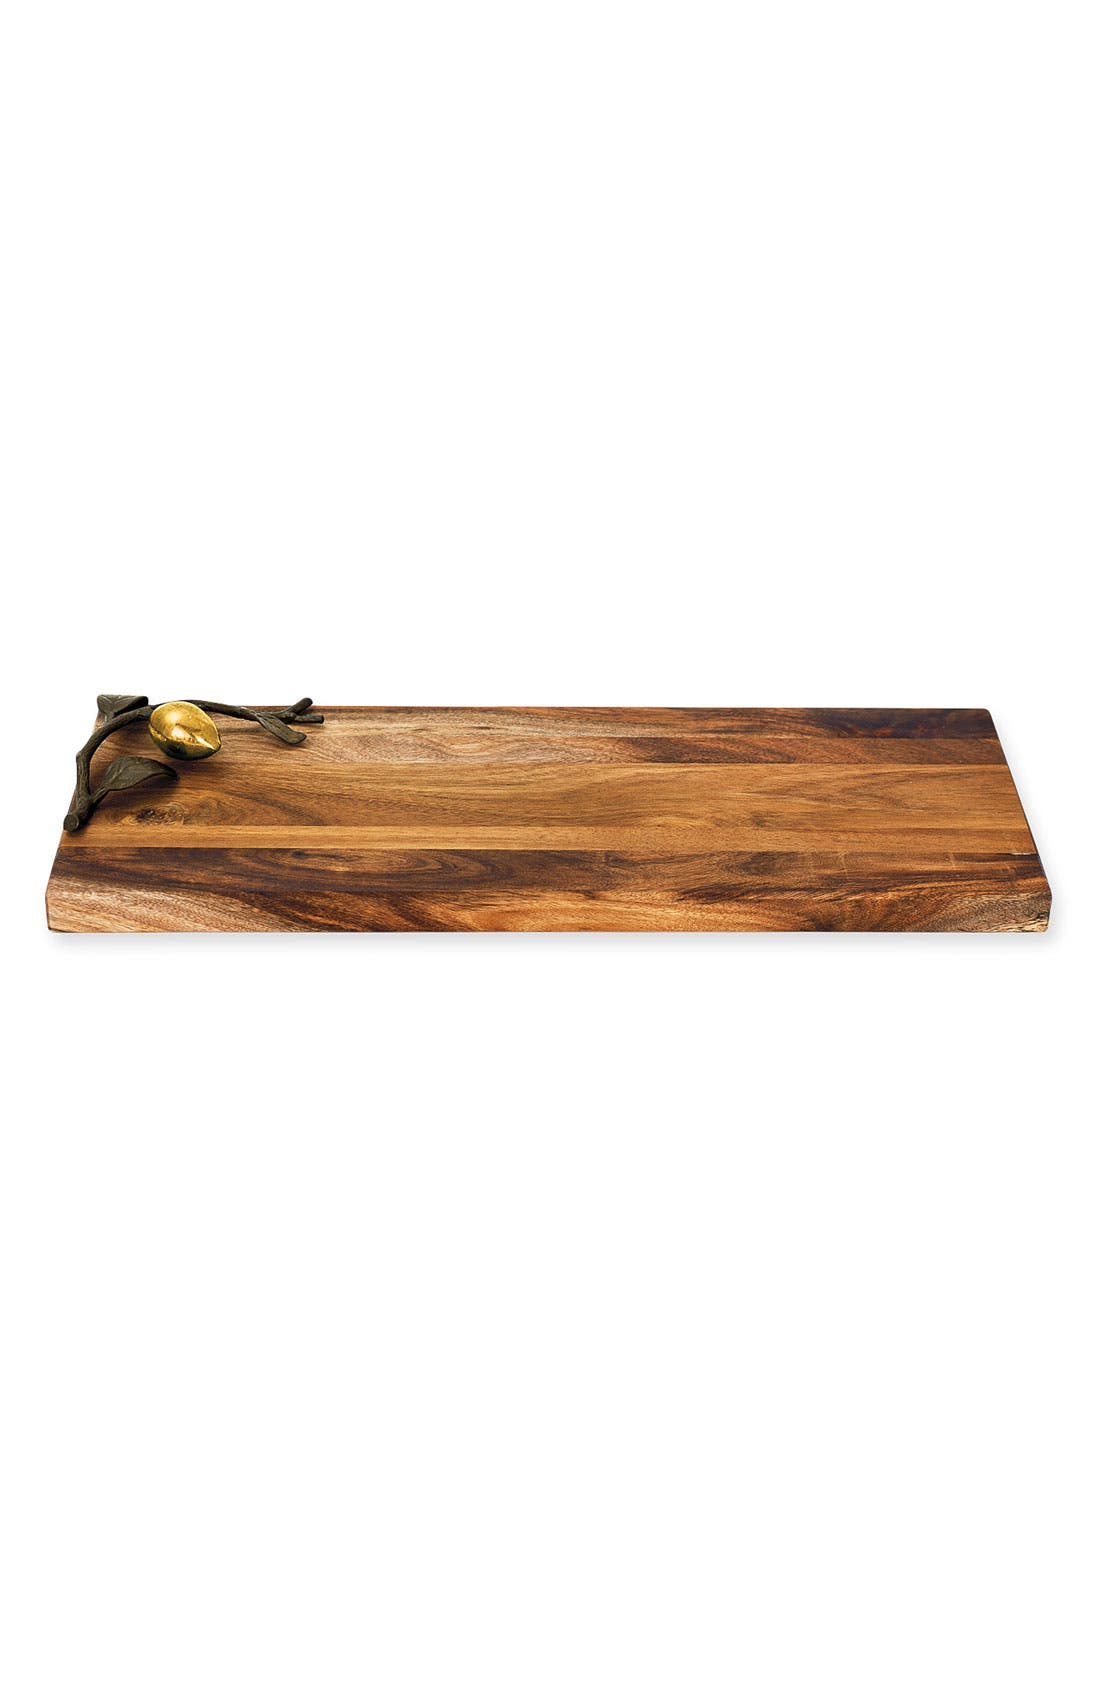 Main Image - Michael Aram 'Lemonwood' Cutting Board